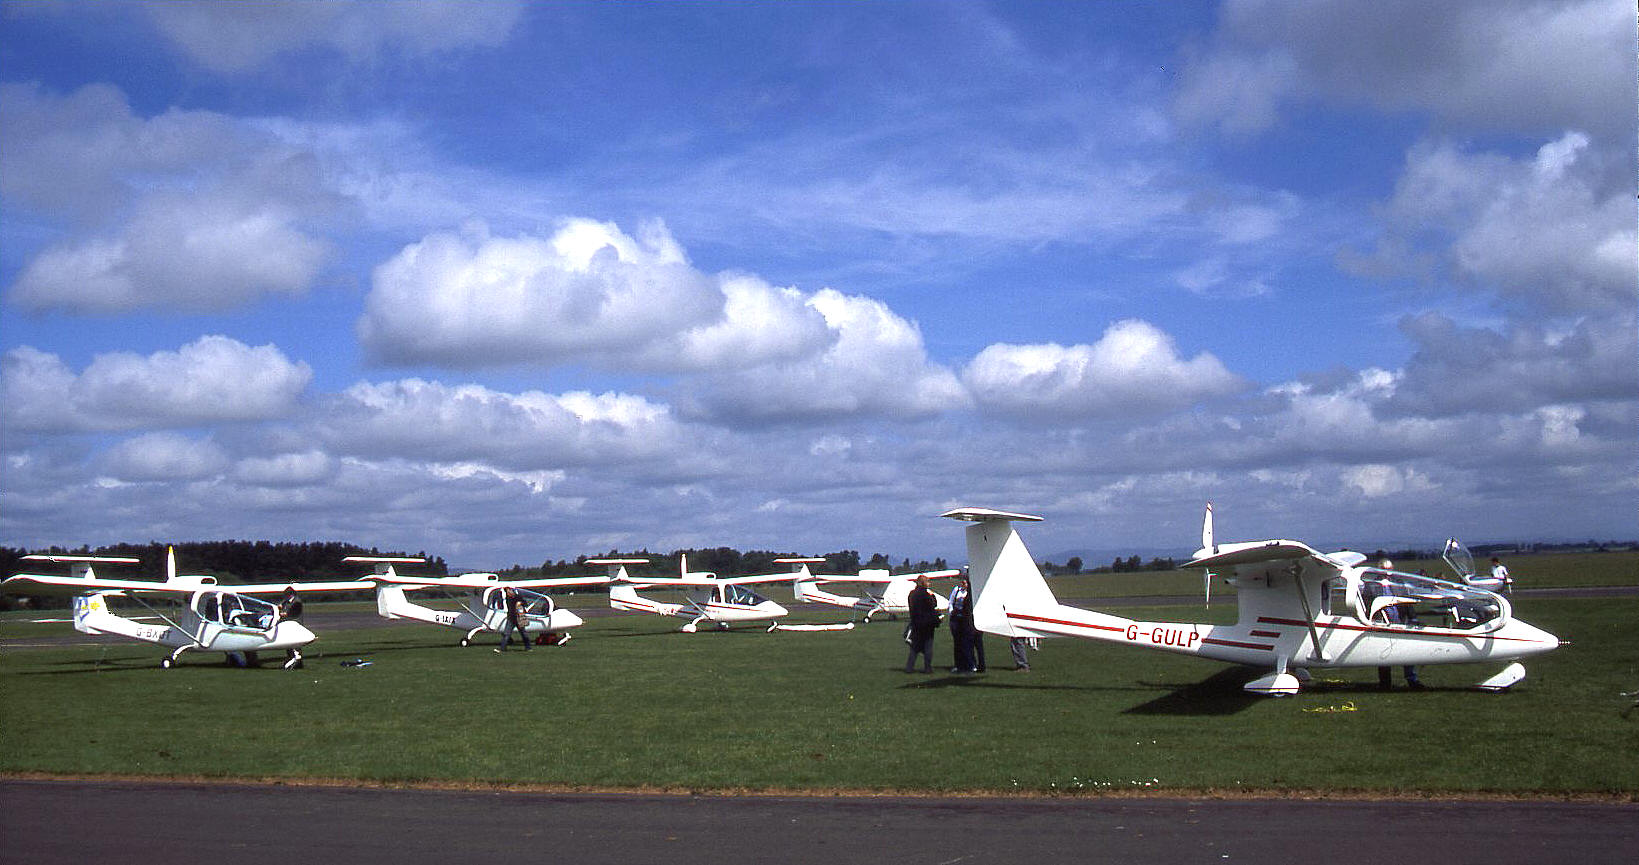 A Flock Of Sky Arrows The Sky Arrow 650t G Gulp In The Foreground